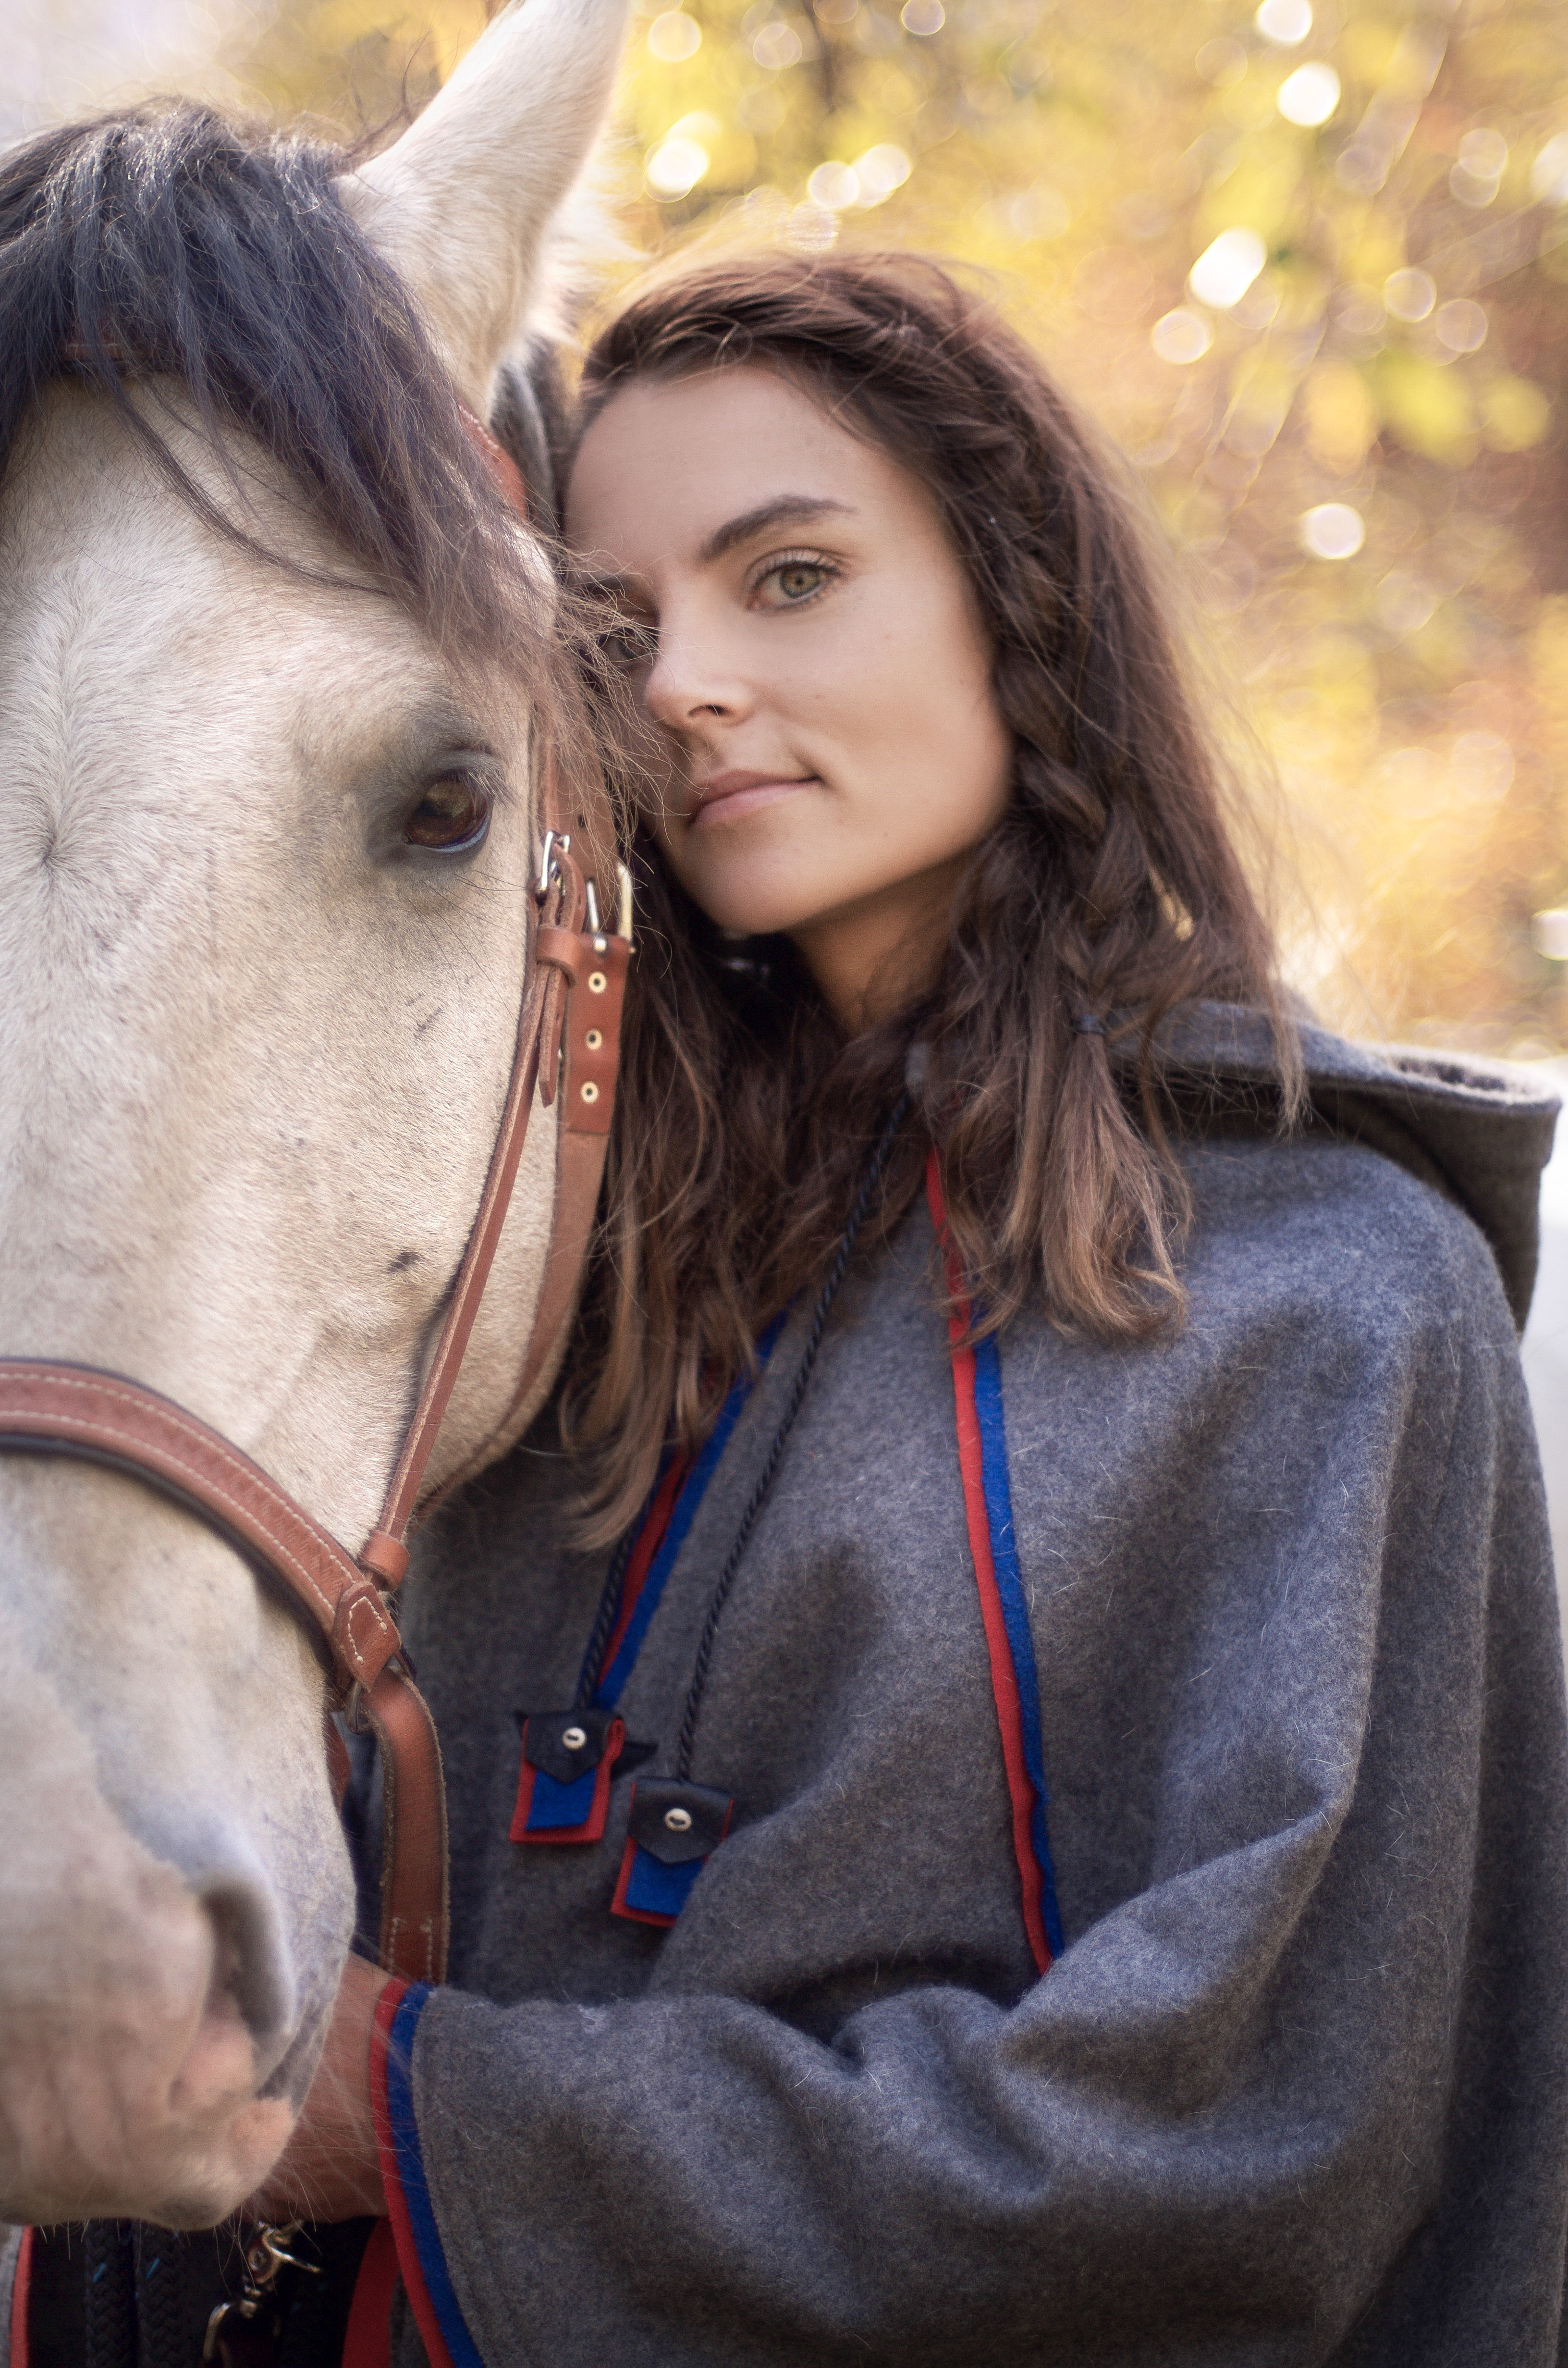 Equine and Girl Portrait Photography